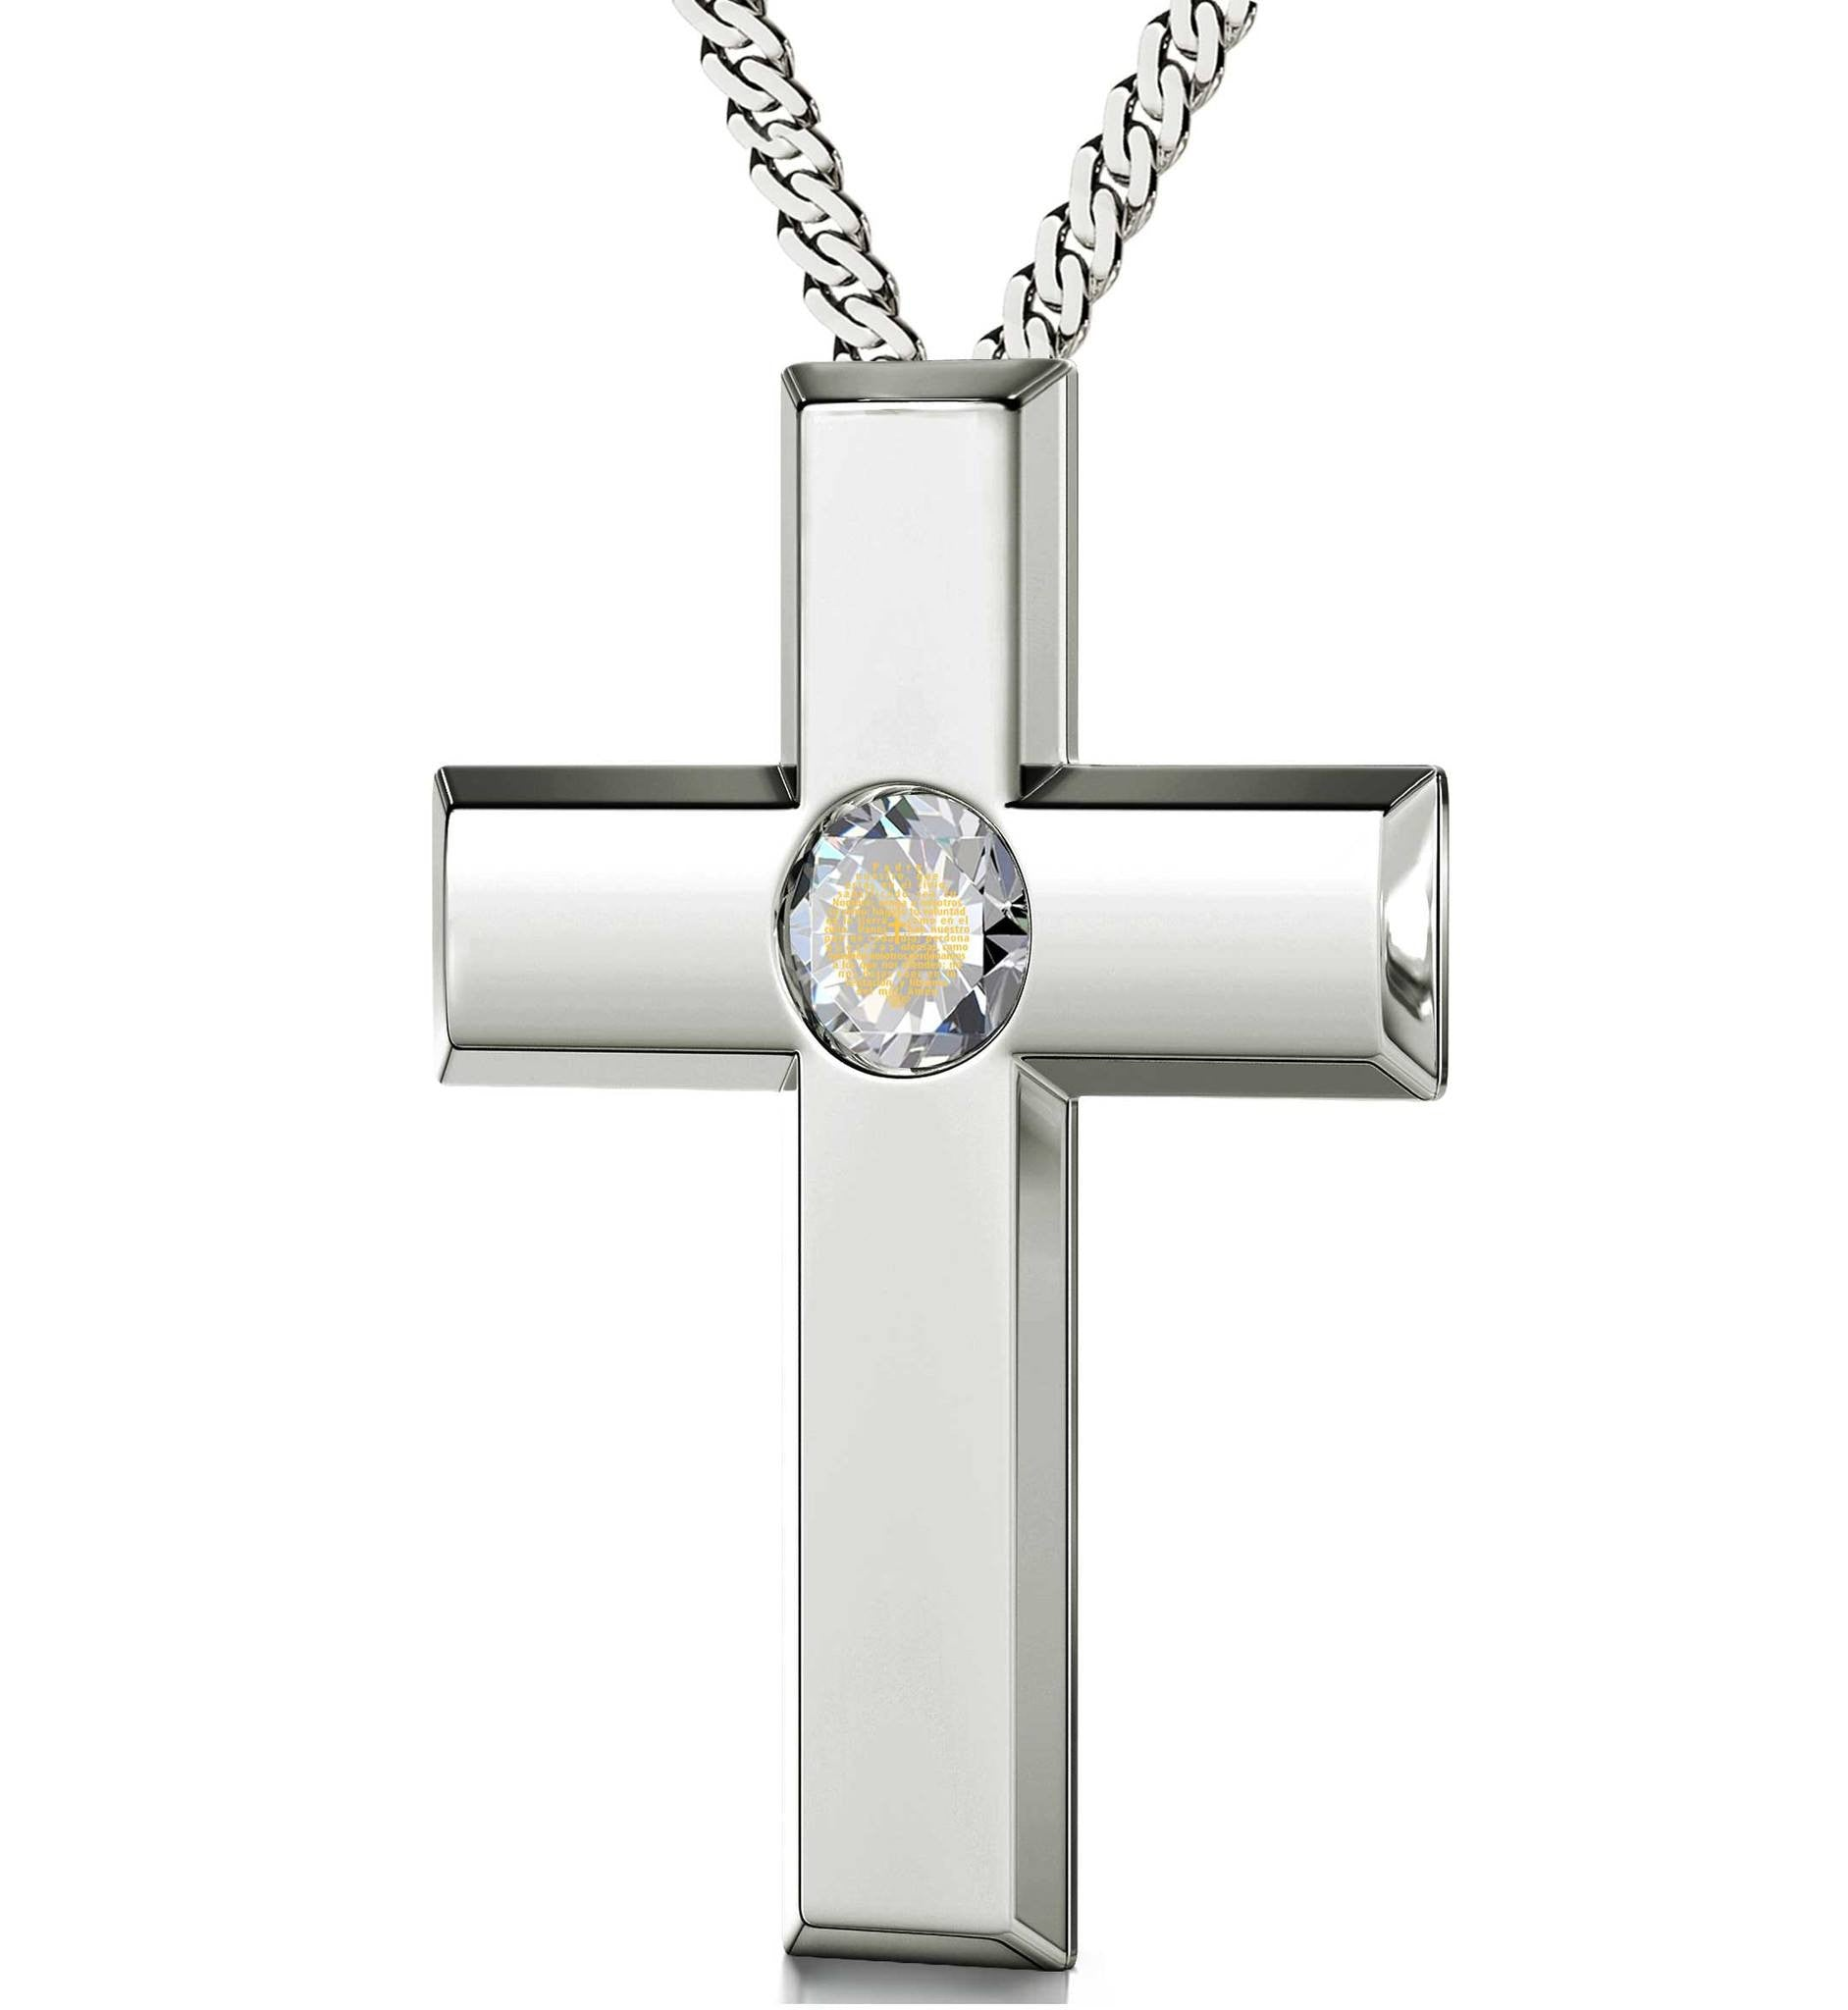 Womens silver cross necklace padre nuestro buy now from nano jewelry sterling silver cross jewelry with our father prayer womens gifts for christmas cute aloadofball Images